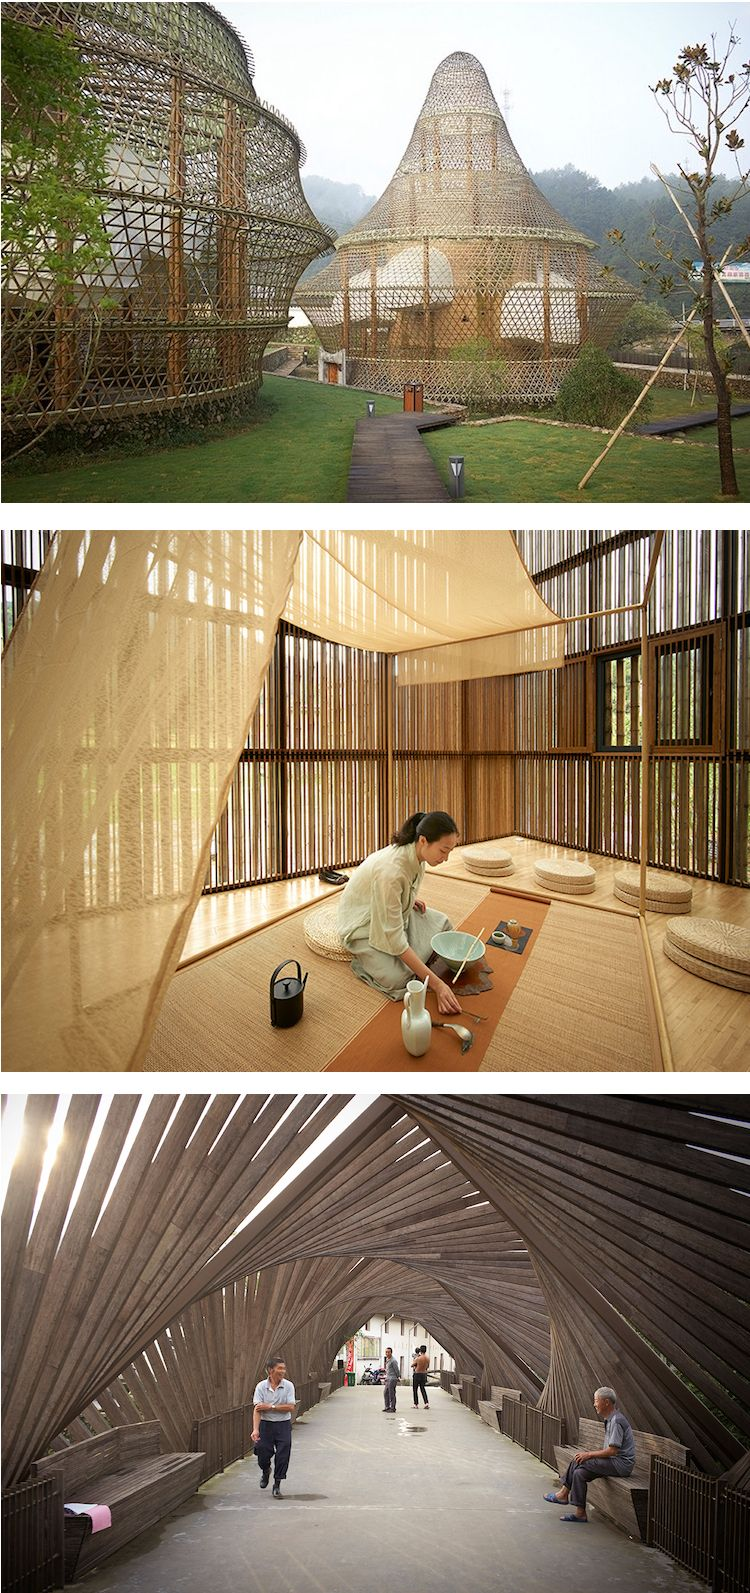 First Bamboo Biennale Creates Cutting-Edge Structures in Small ... on chinese school house, chinese christmas house, chinese villages in china, chinese traditions, olden day chinese house, chinese wood house, chinese land, chinese urban house, chinese beach house, chinese forest house, chinese food house, chinese art house, chinese house plans, chinese people house, chinese dome house, chinese light house, old chinese house, chinese drawings of people,